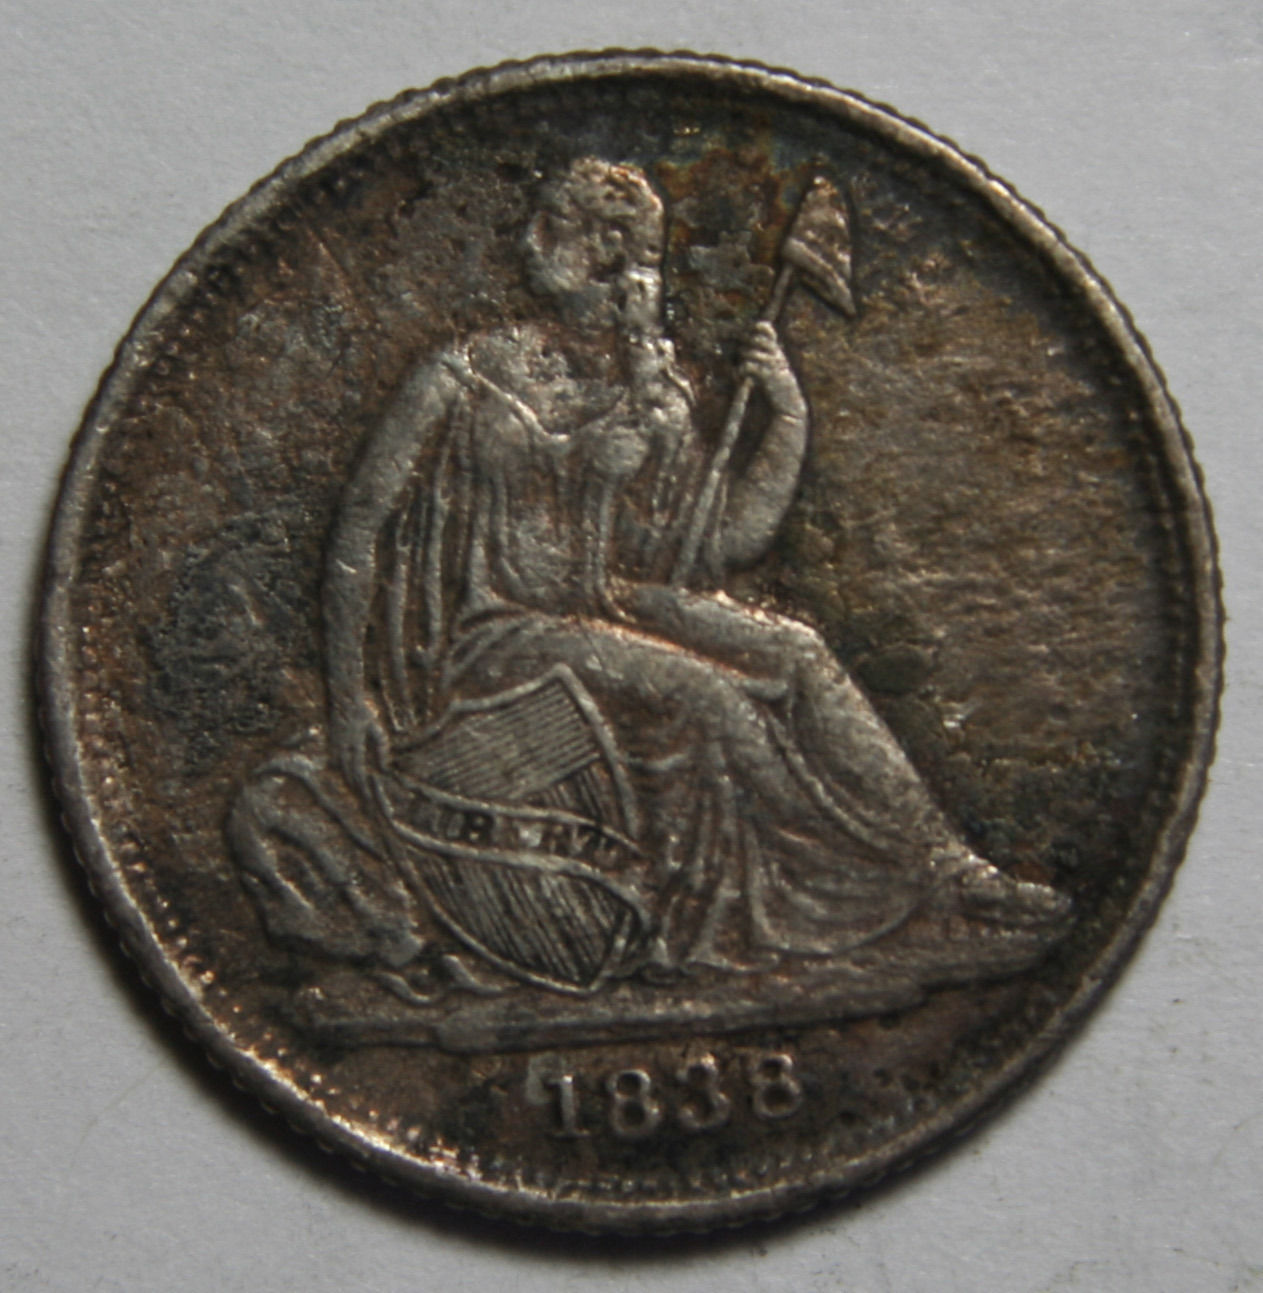 1838O Seated Dime Silver 10¢ Coin Lot# MZ 4072